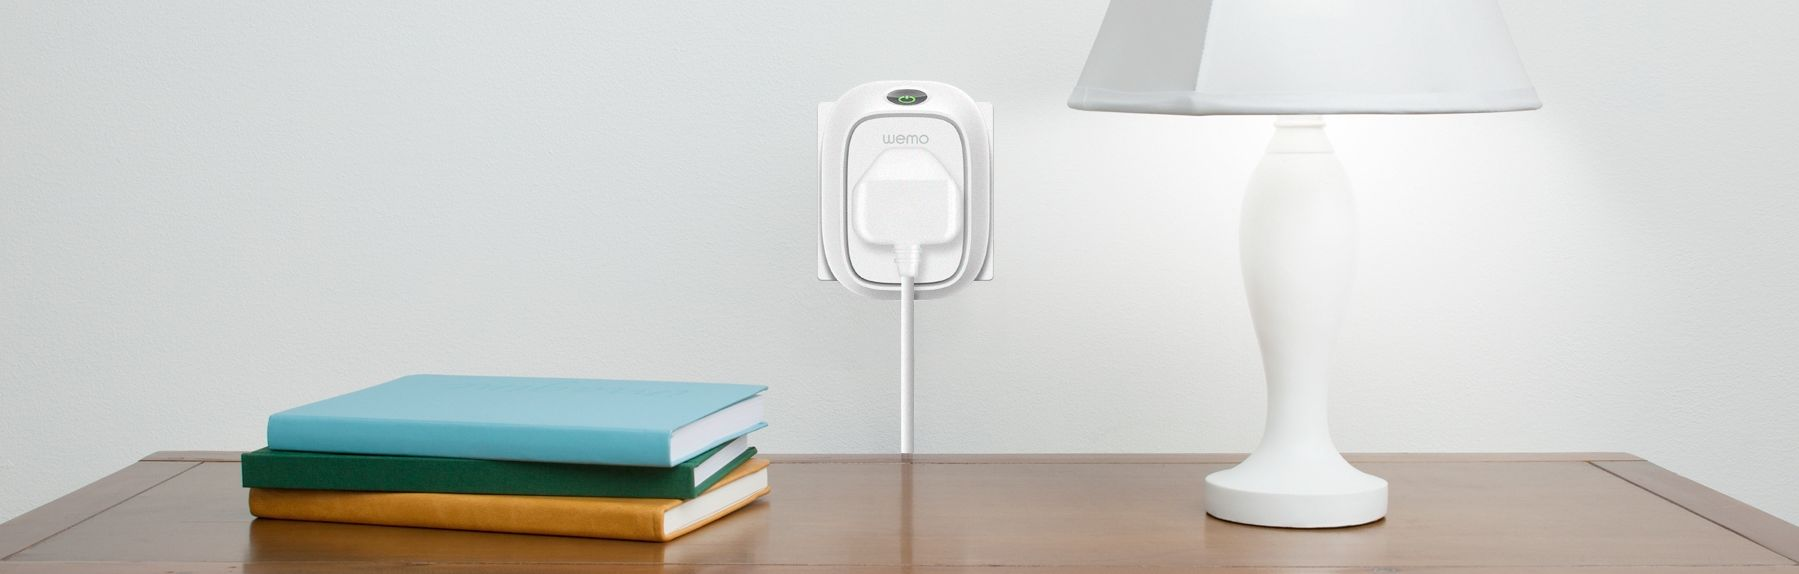 Image of WeMo